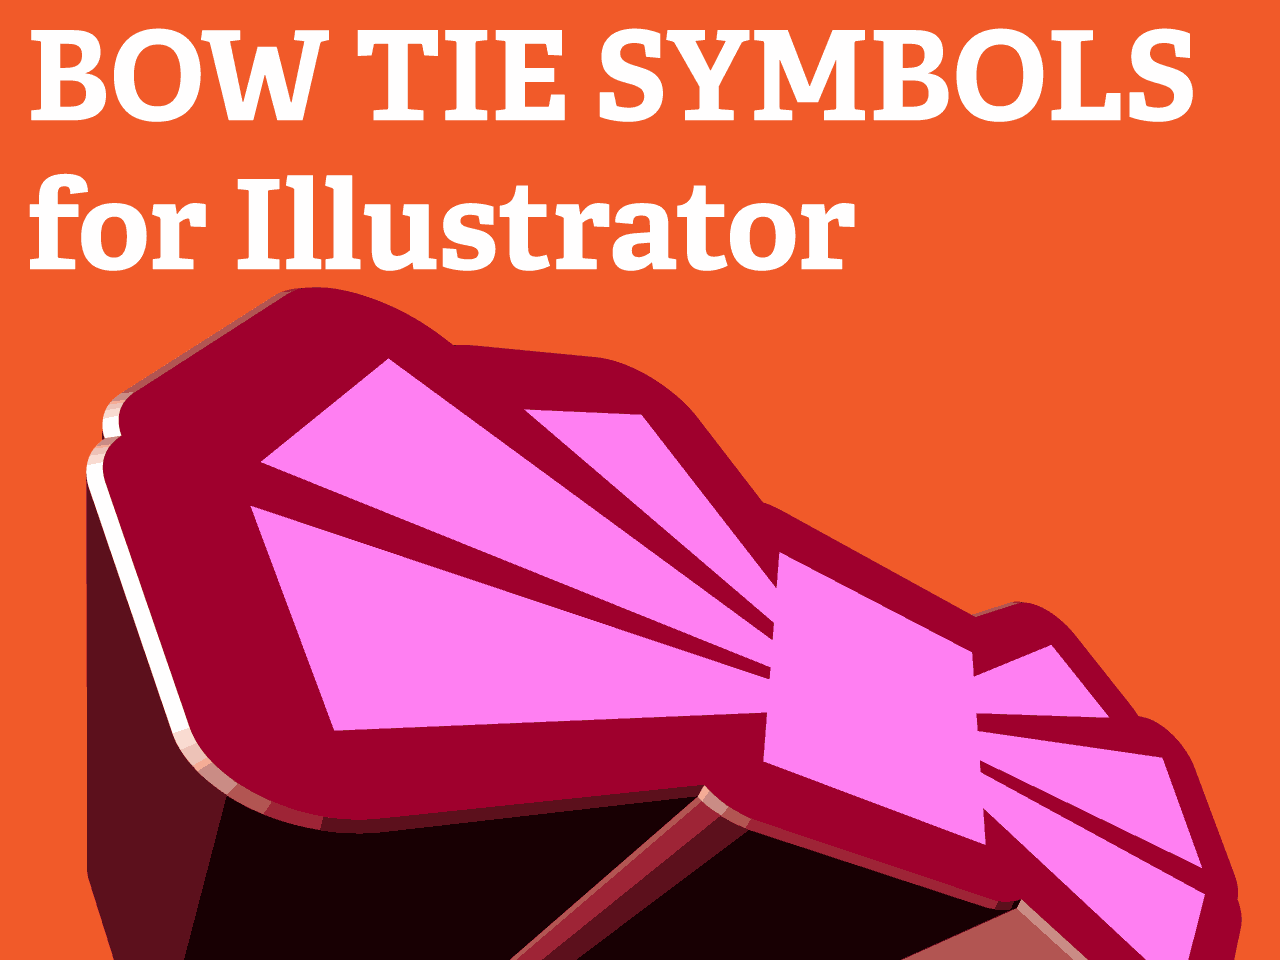 Bow Tie Symbols For Illustrator Vector Shapes 3d Curved Extruded